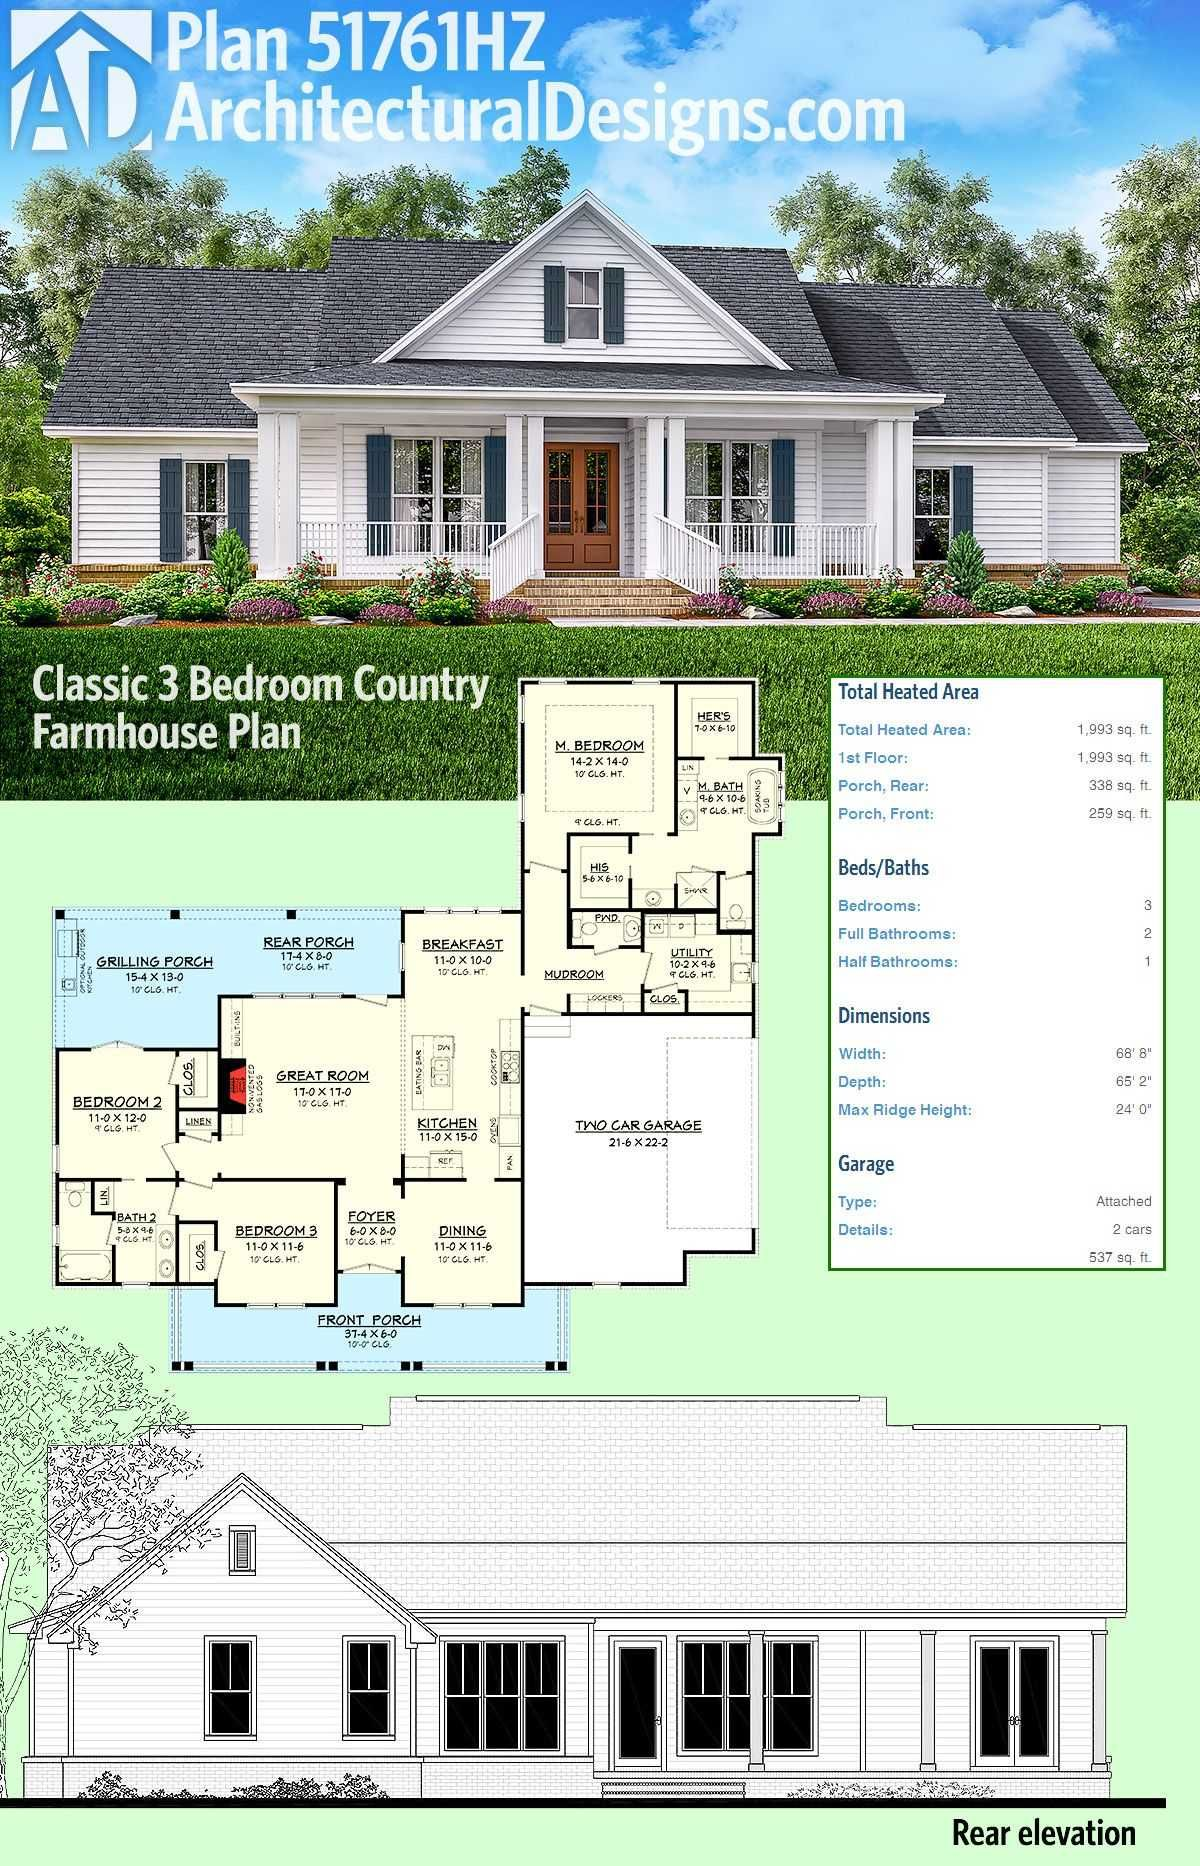 Single Story Wrap Around Porch : single, story, around, porch, Around, Porch, Modern, Story, Farmhouse, Plans, Beautiful, Architectural, Design, House, Plans,, Floor